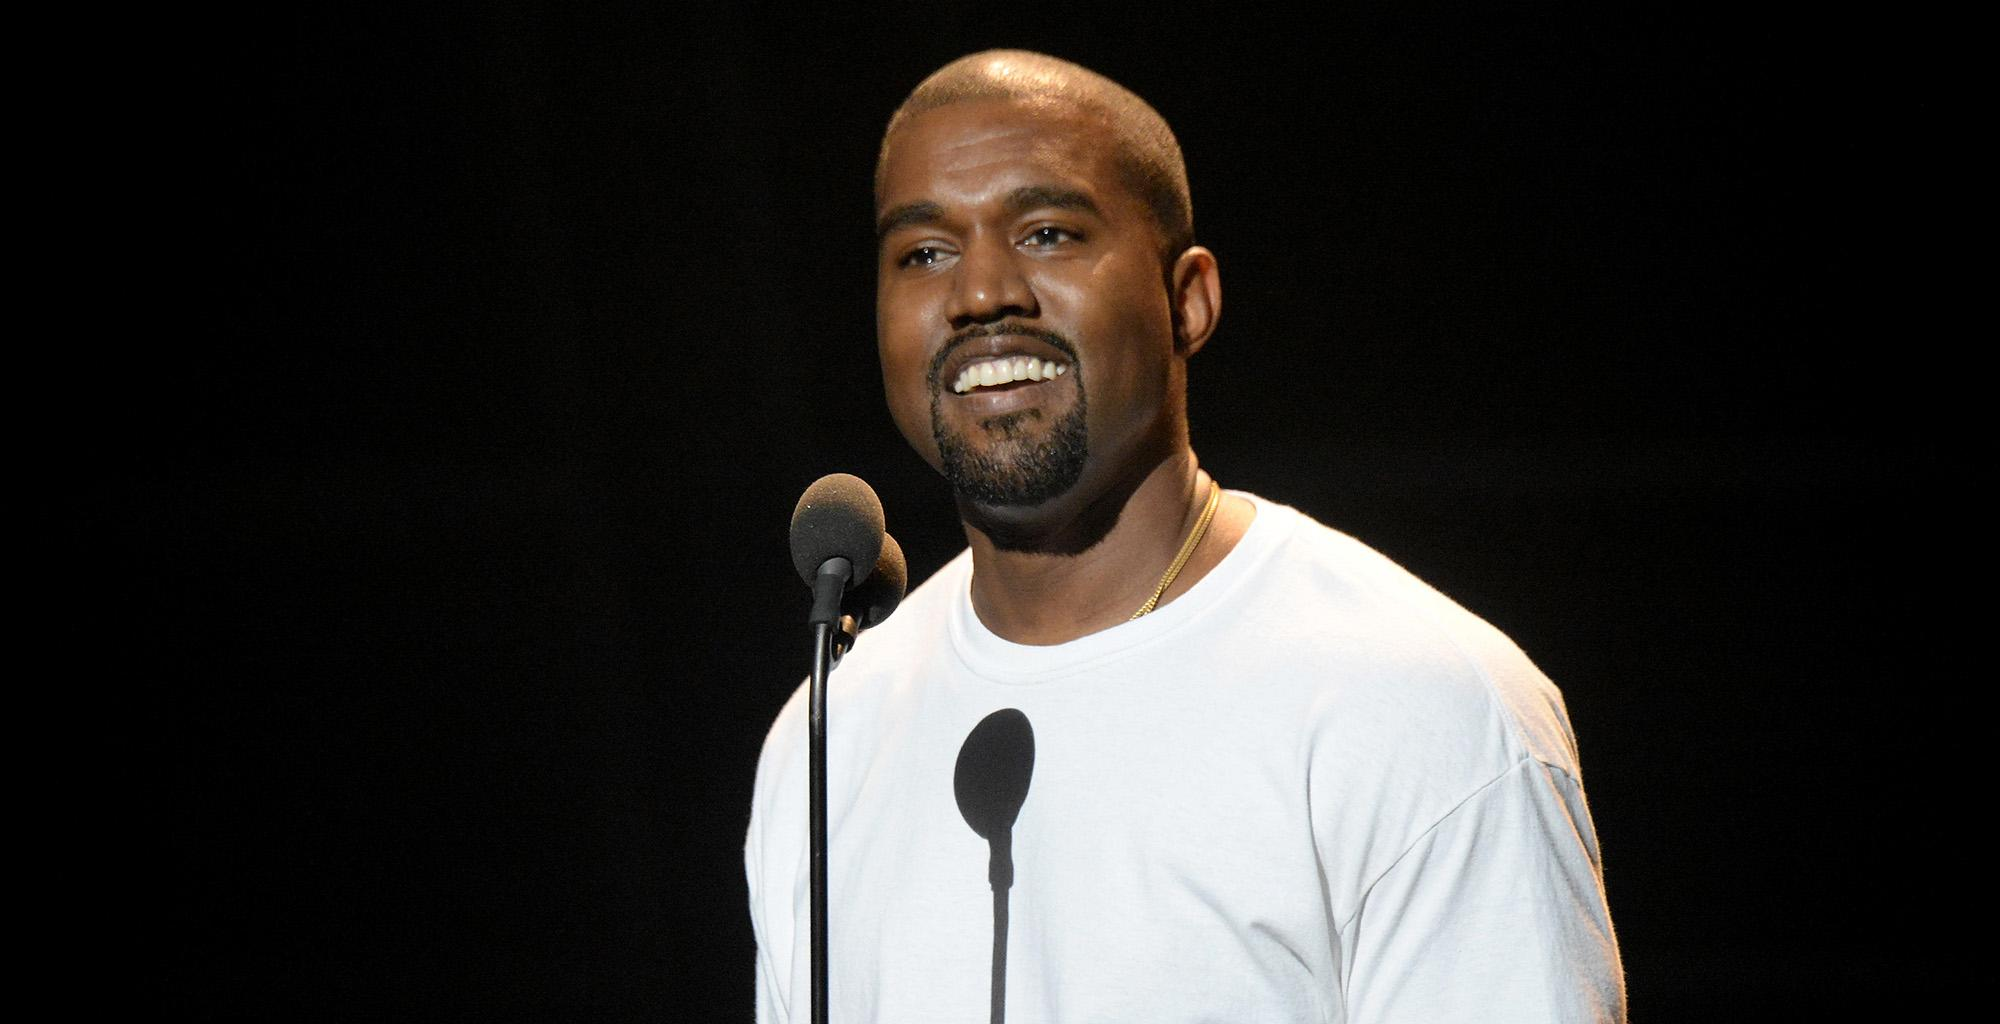 Kanye West Is Taking Over KUWK -- Named As Creative Director And Will Now Be Featured In Confessionals